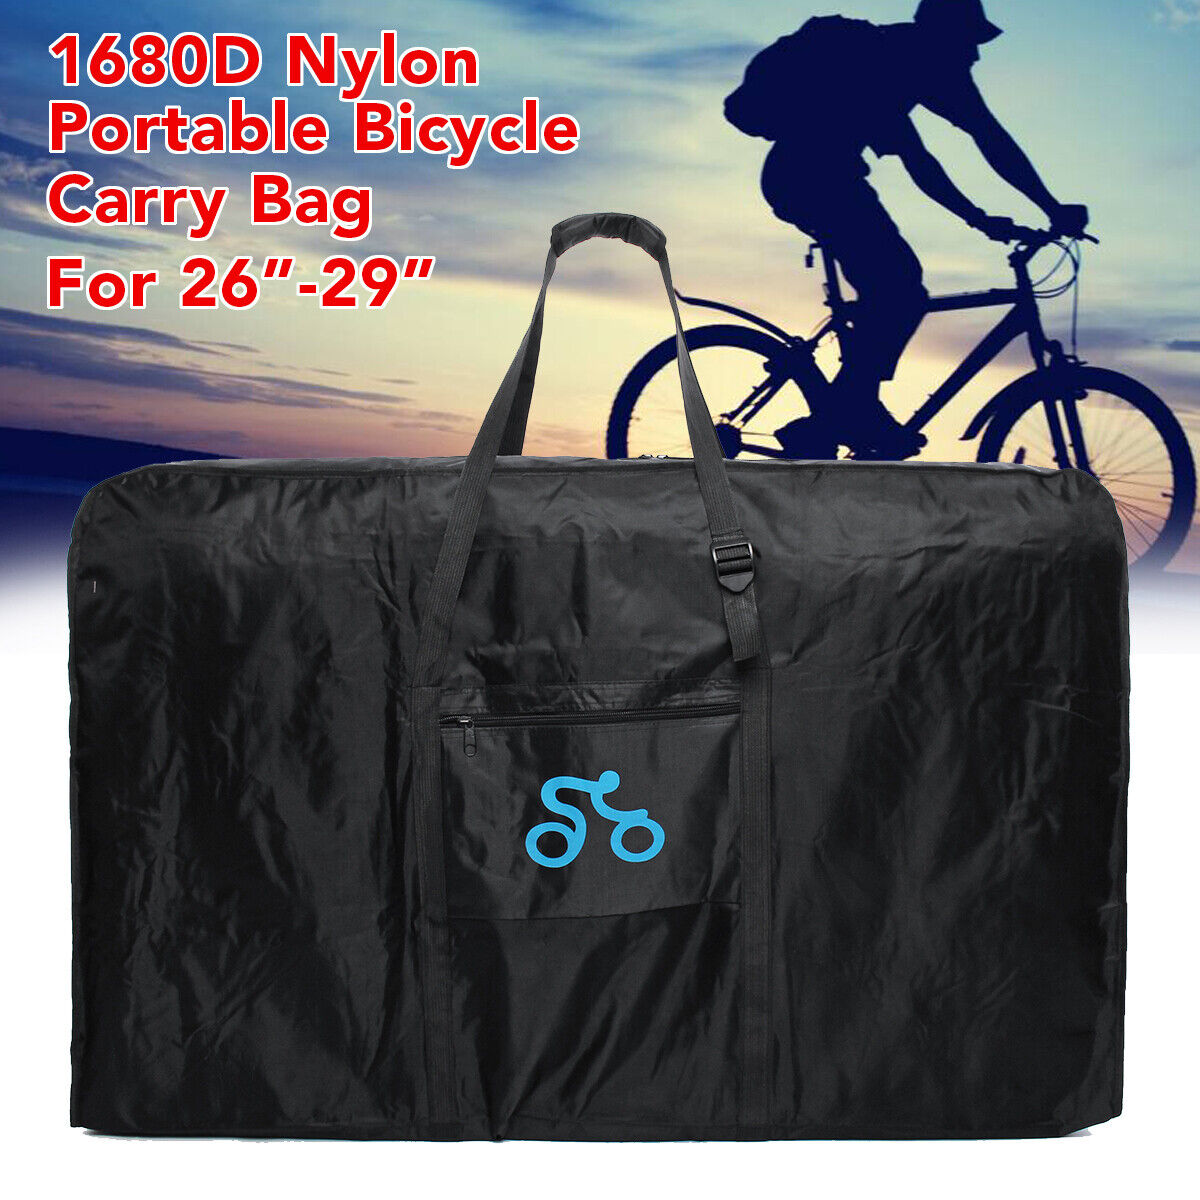 1680D 26-29''Nylon Portable Bicycle Carry  Bag Cycling Bike Transport Case Travel  high quality genuine